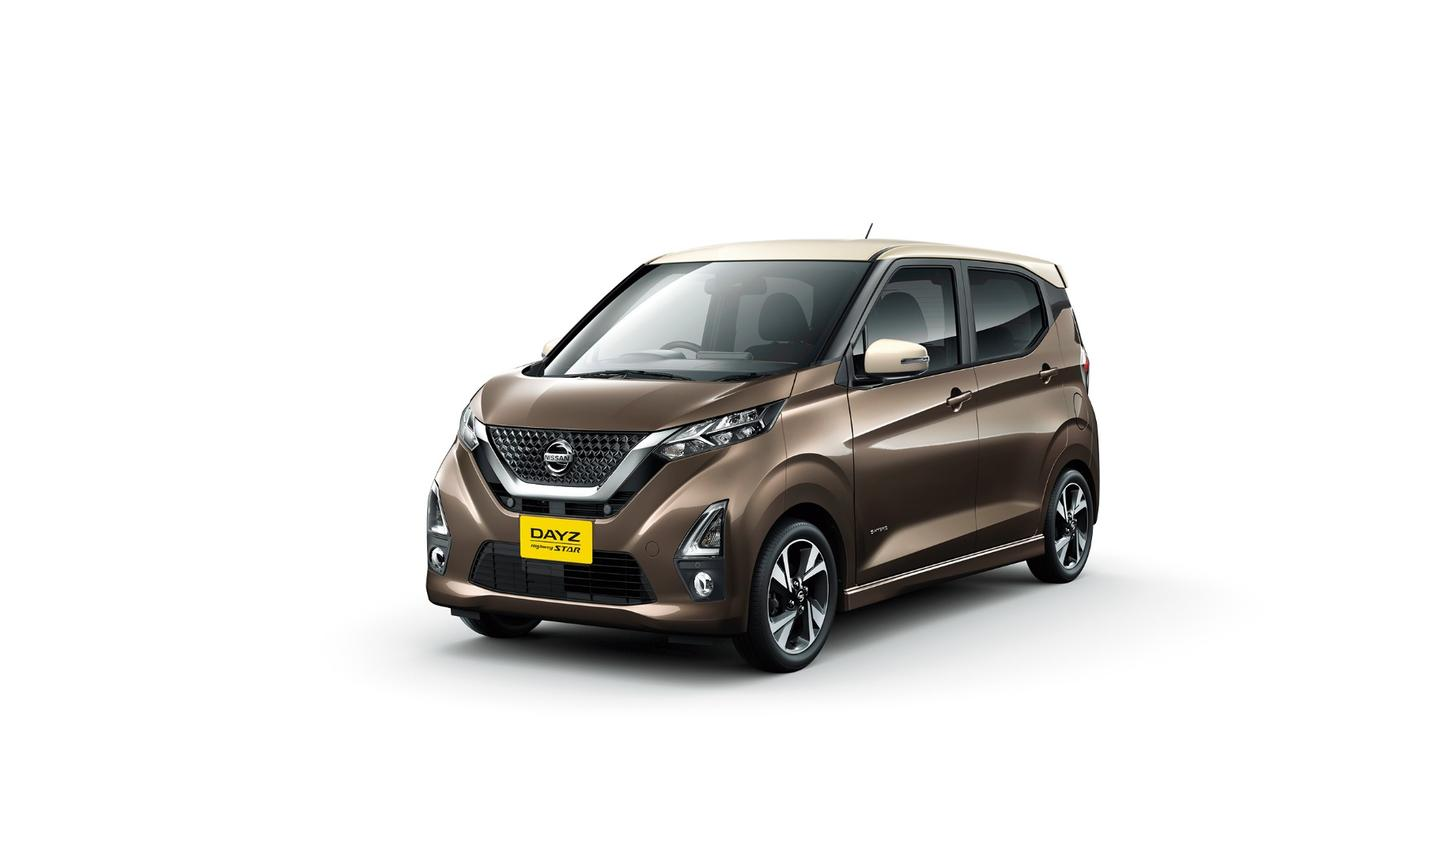 The all-new Nissan Dayz